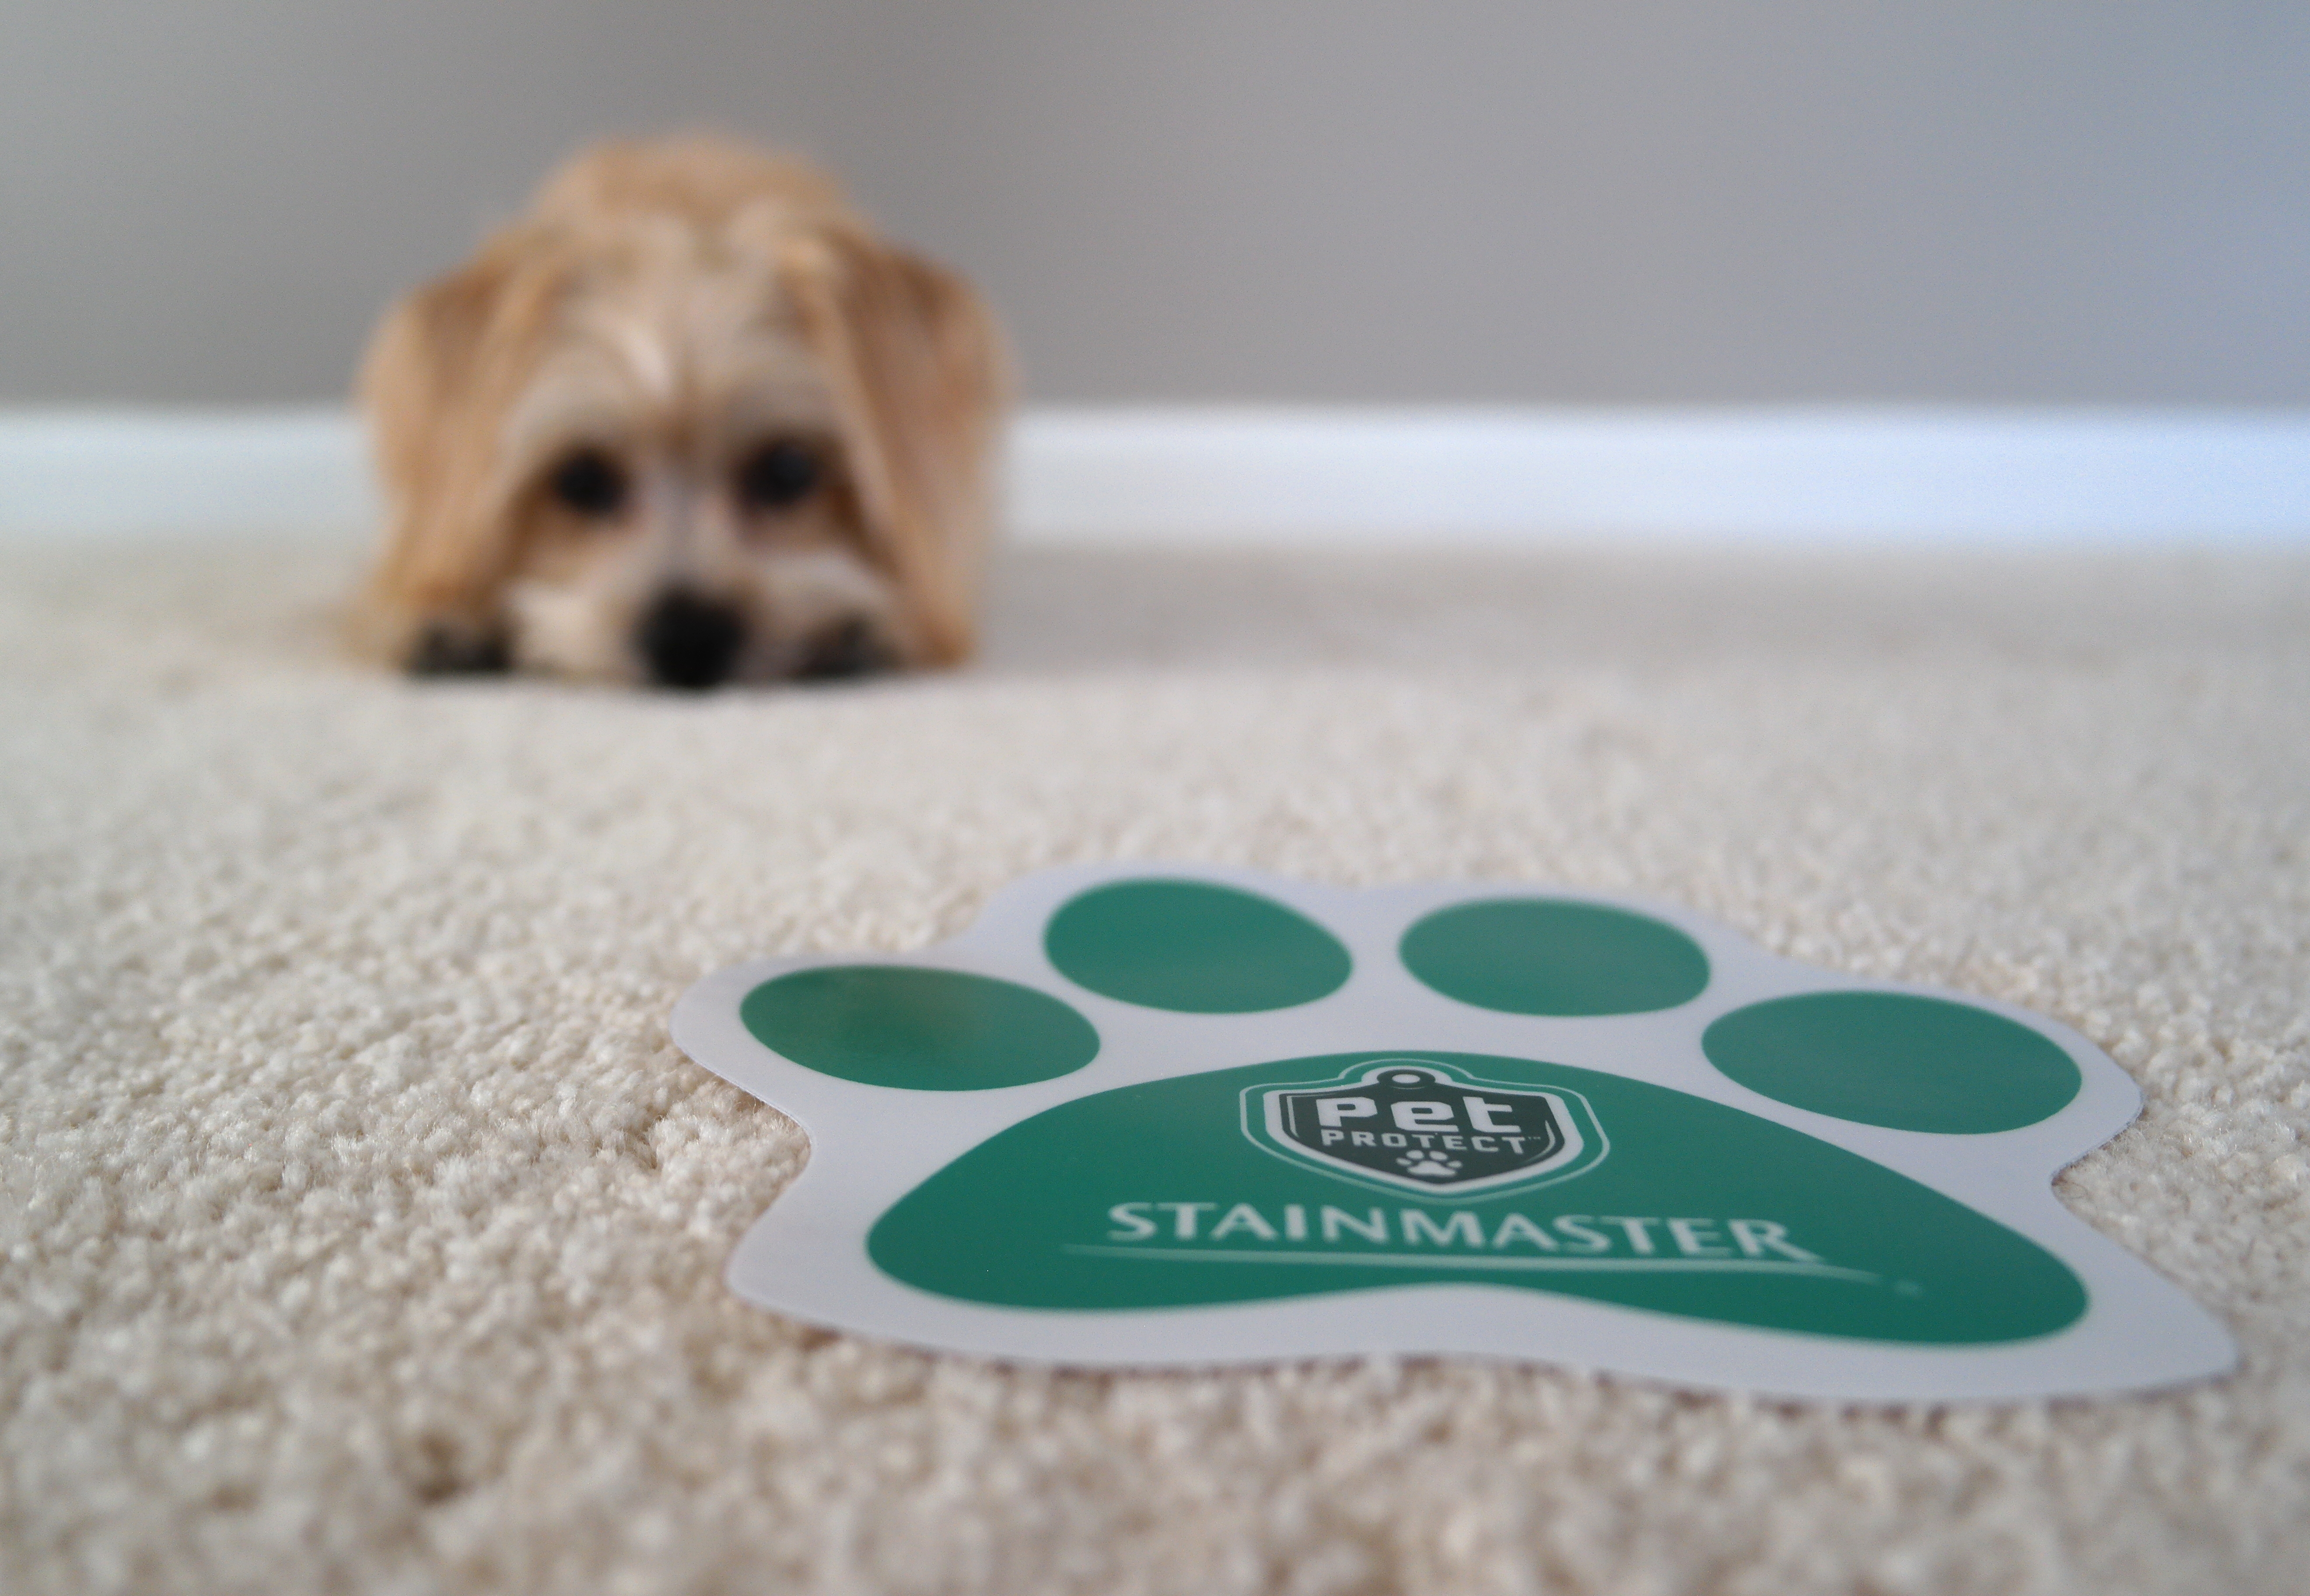 Rambo's New Stainmaster Carpet